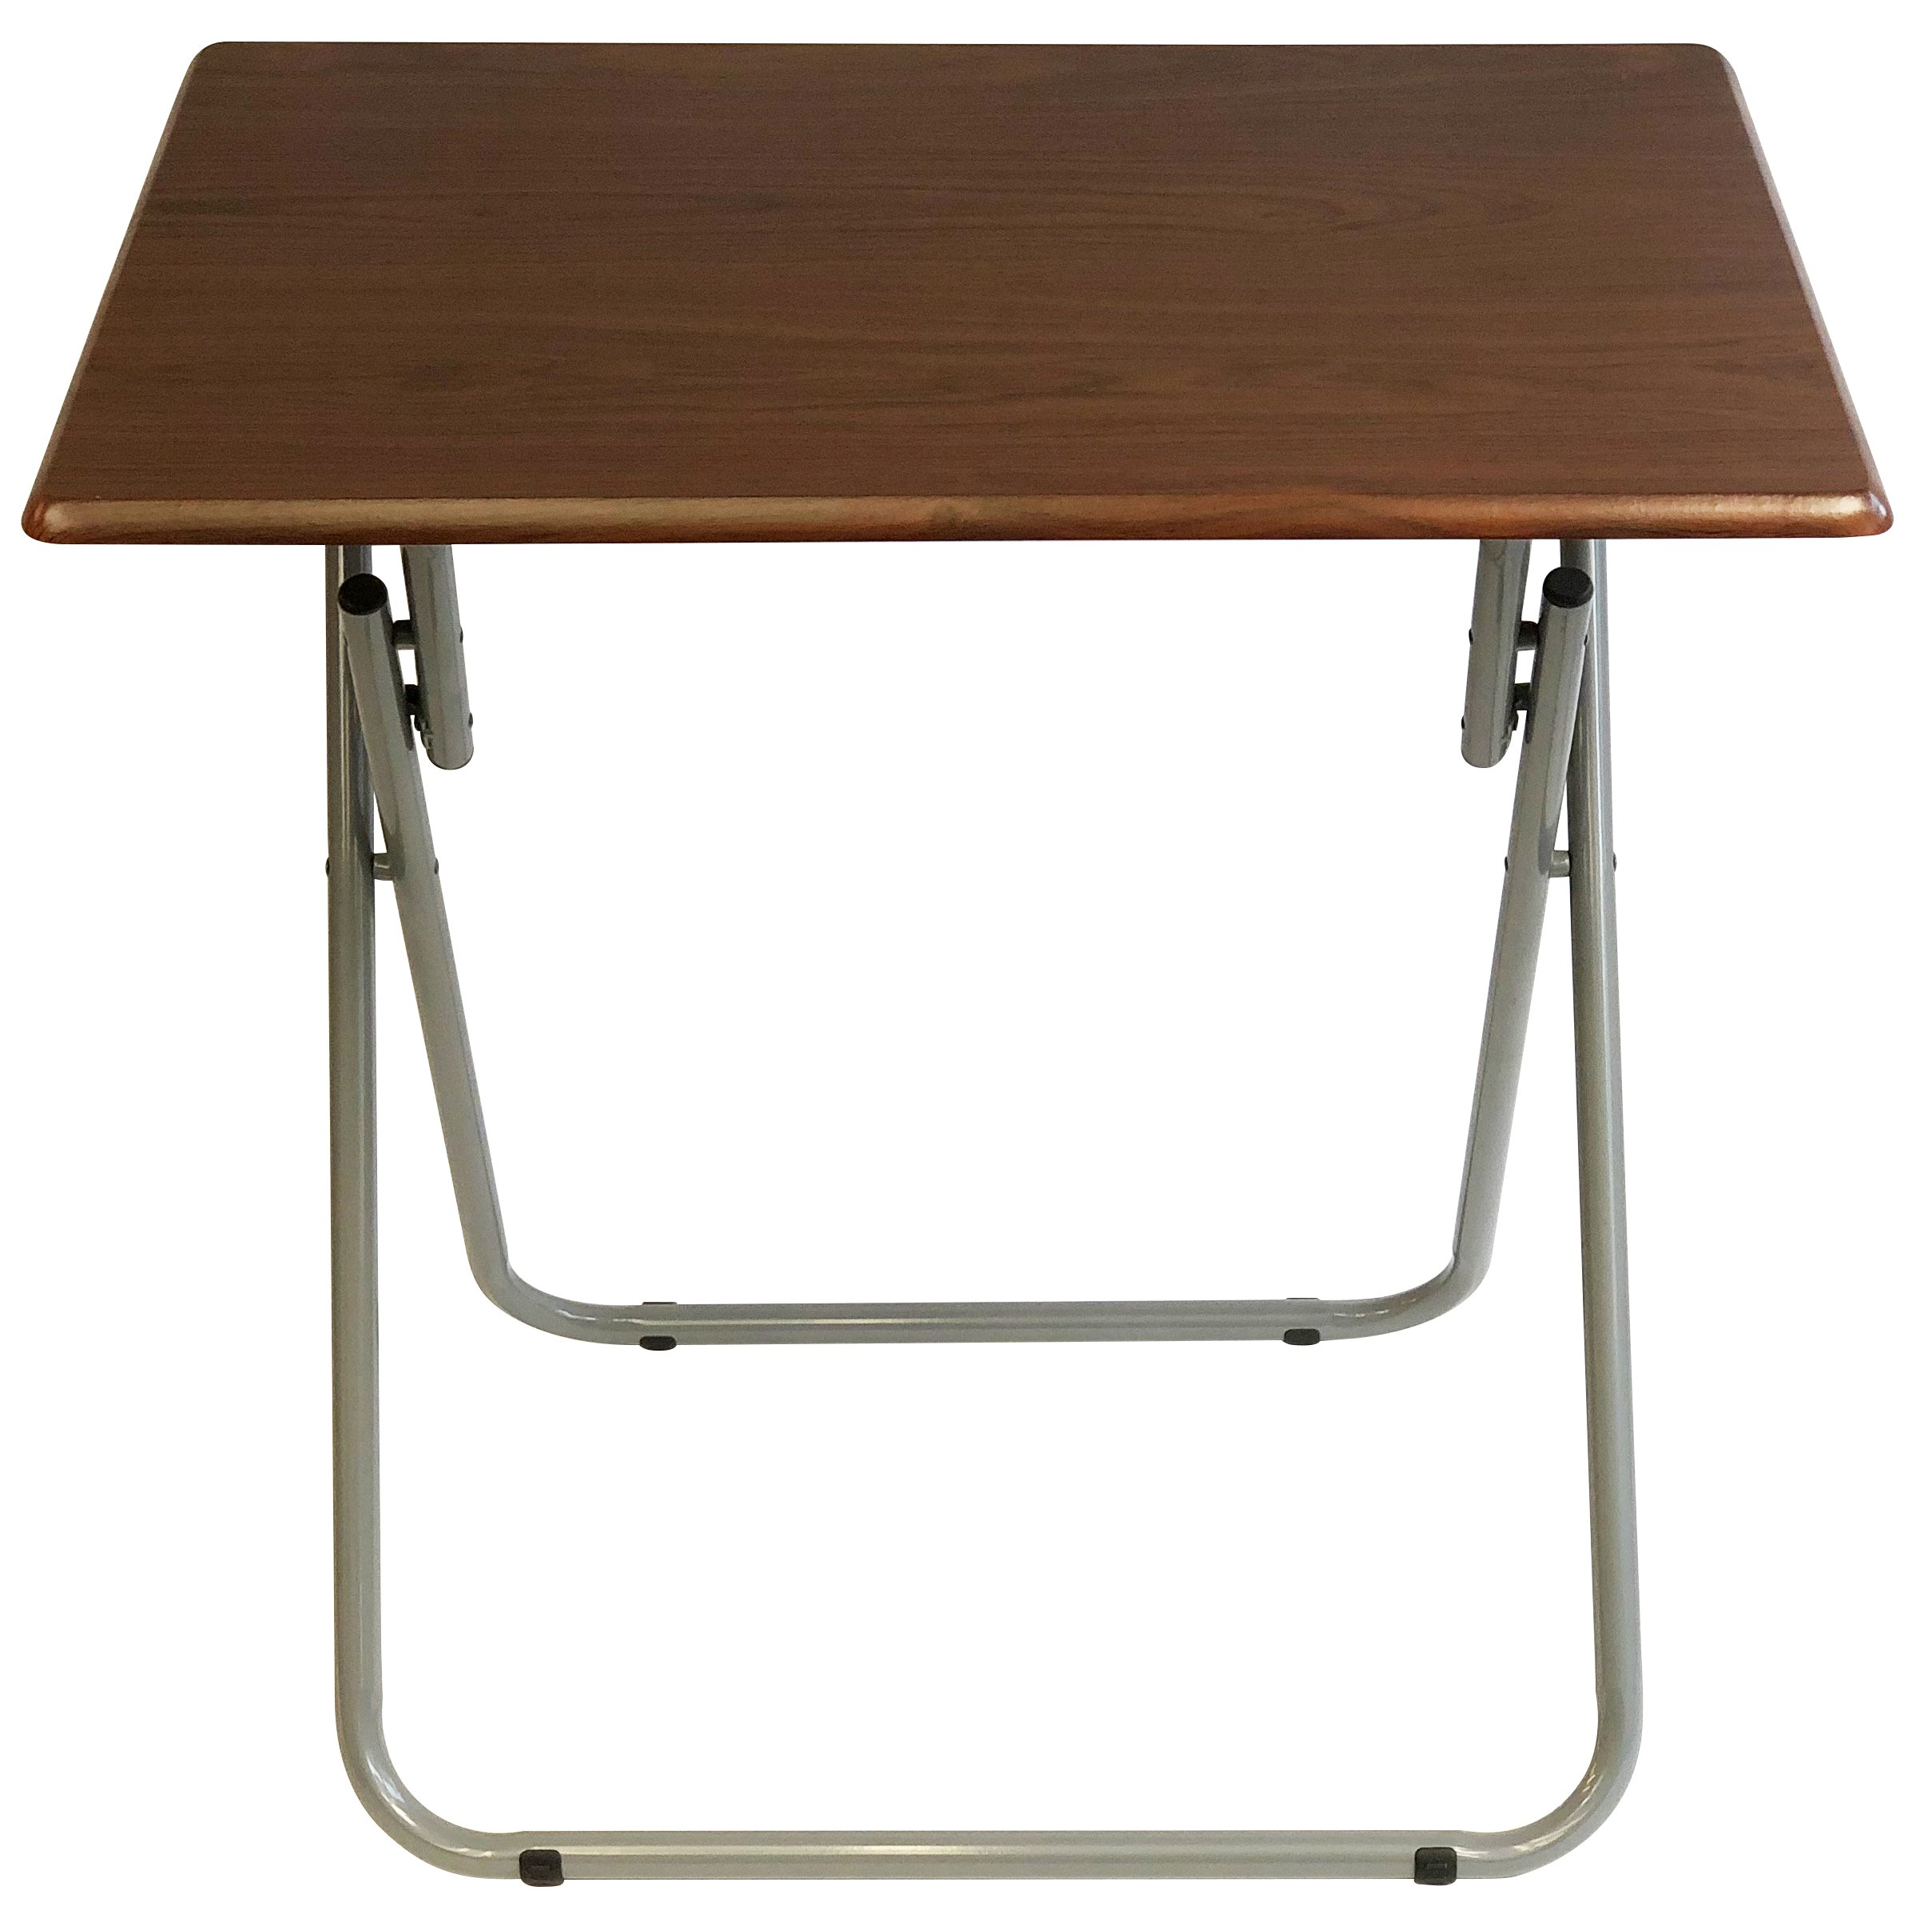 Wee's Beyond 1306 Over-Sized TV Tray Folding Table, Cherry by Wee's Beyond (Image #3)